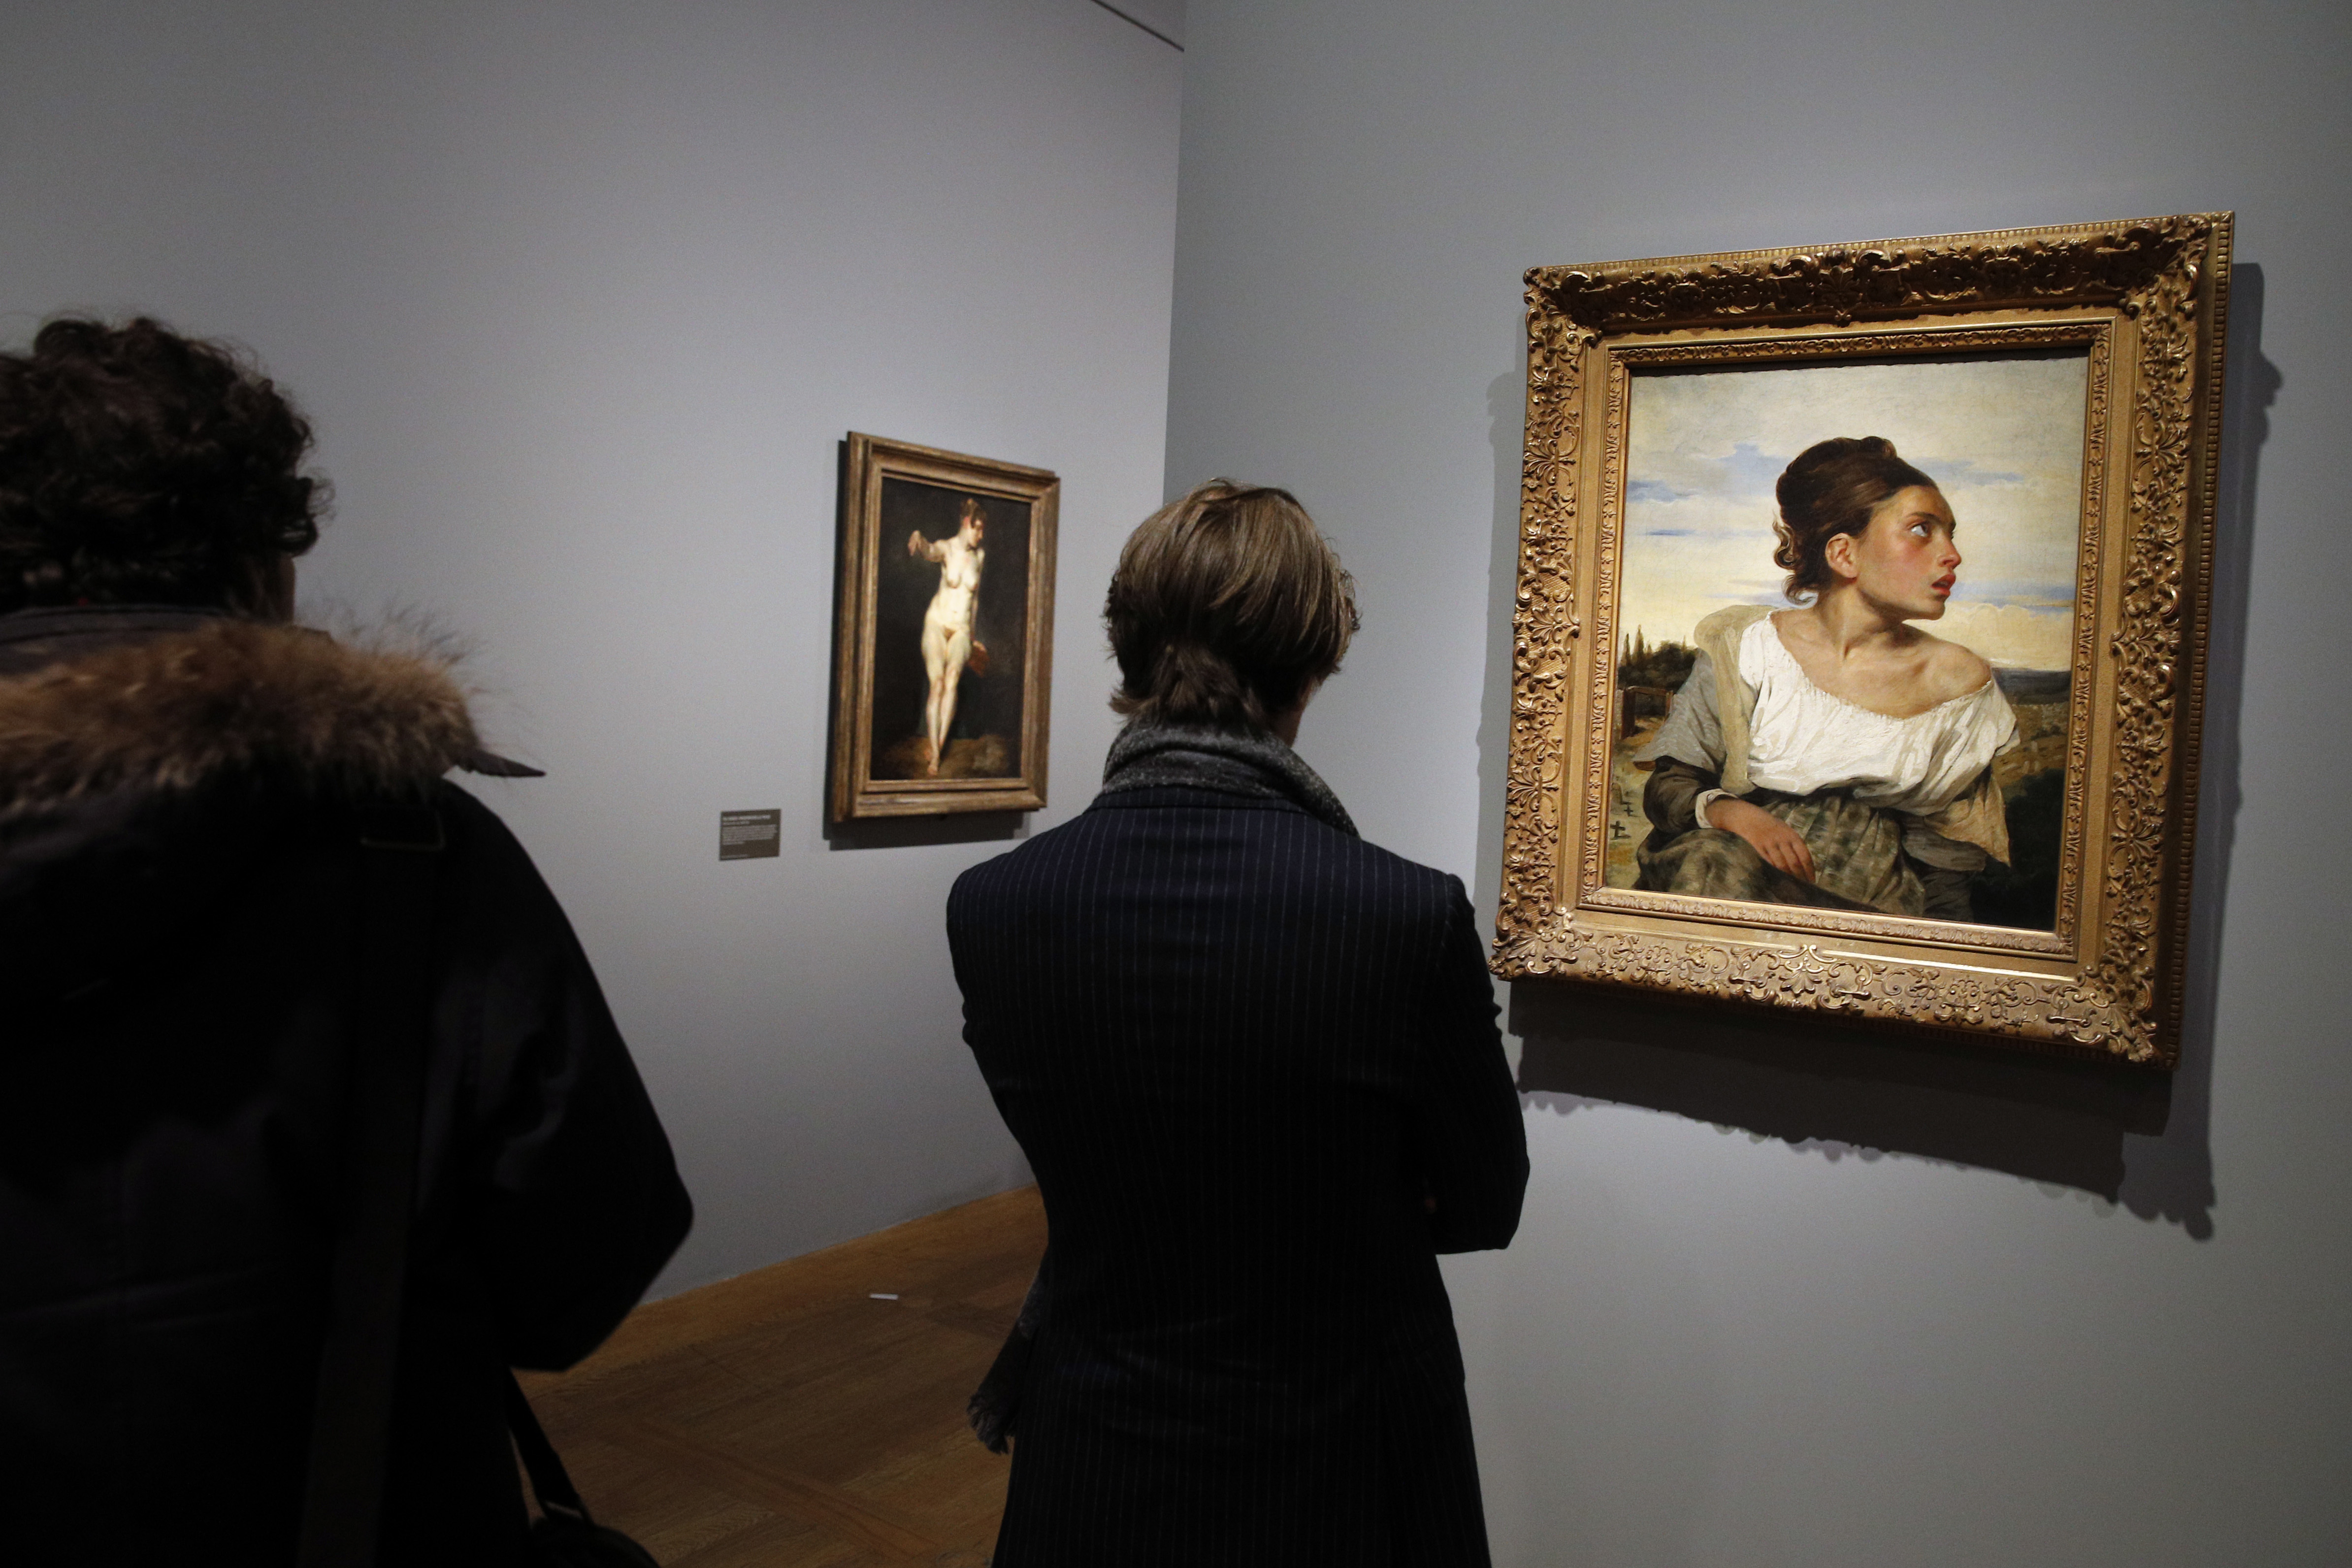 """Visitors look at """"Jeune orpheline au cimetiere"""" (""""Orphan Girl at the Cemetery"""") by Eugene Delacroix at the Louvre, in Paris, March 27, 2018."""